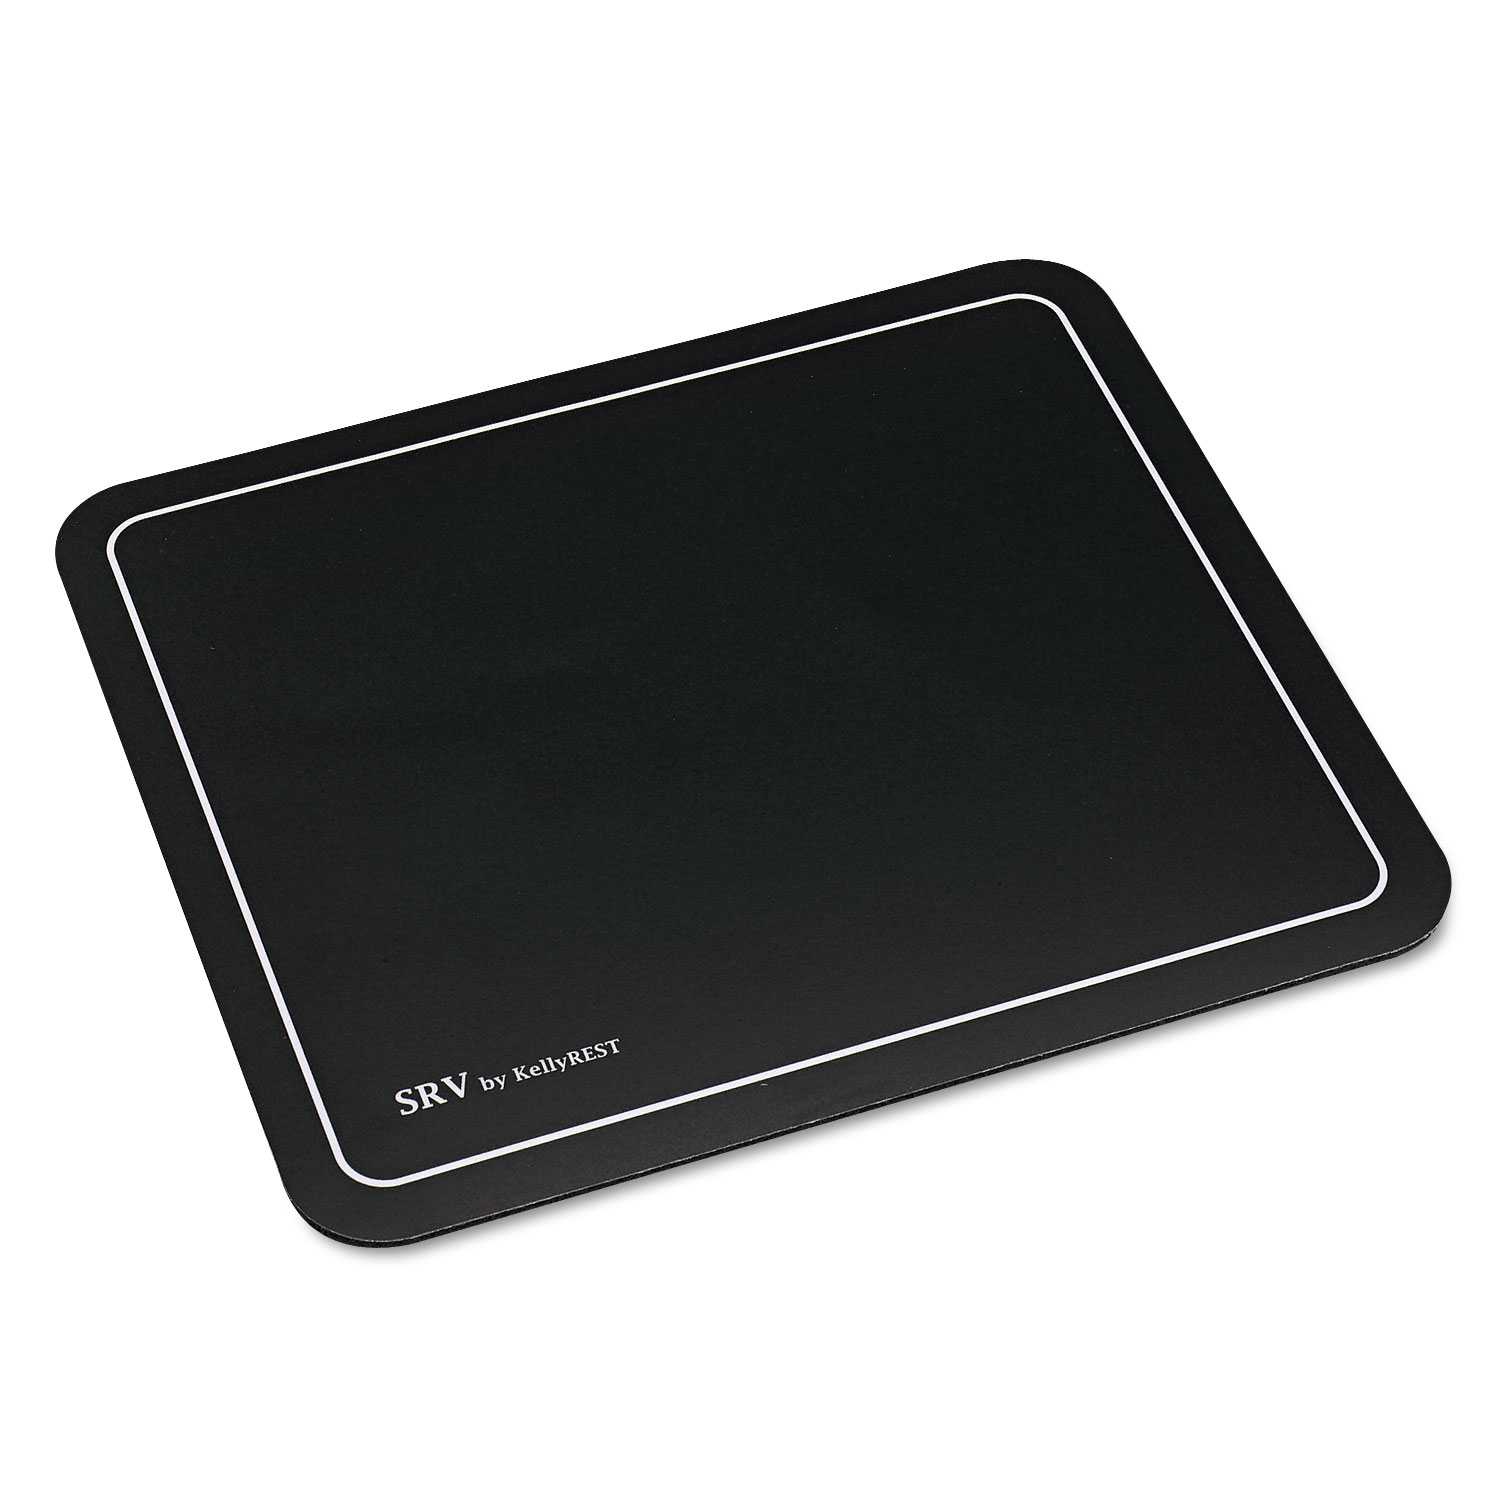 Optical Mouse Pad, 9 x 7-3/4 x 1/8, Black